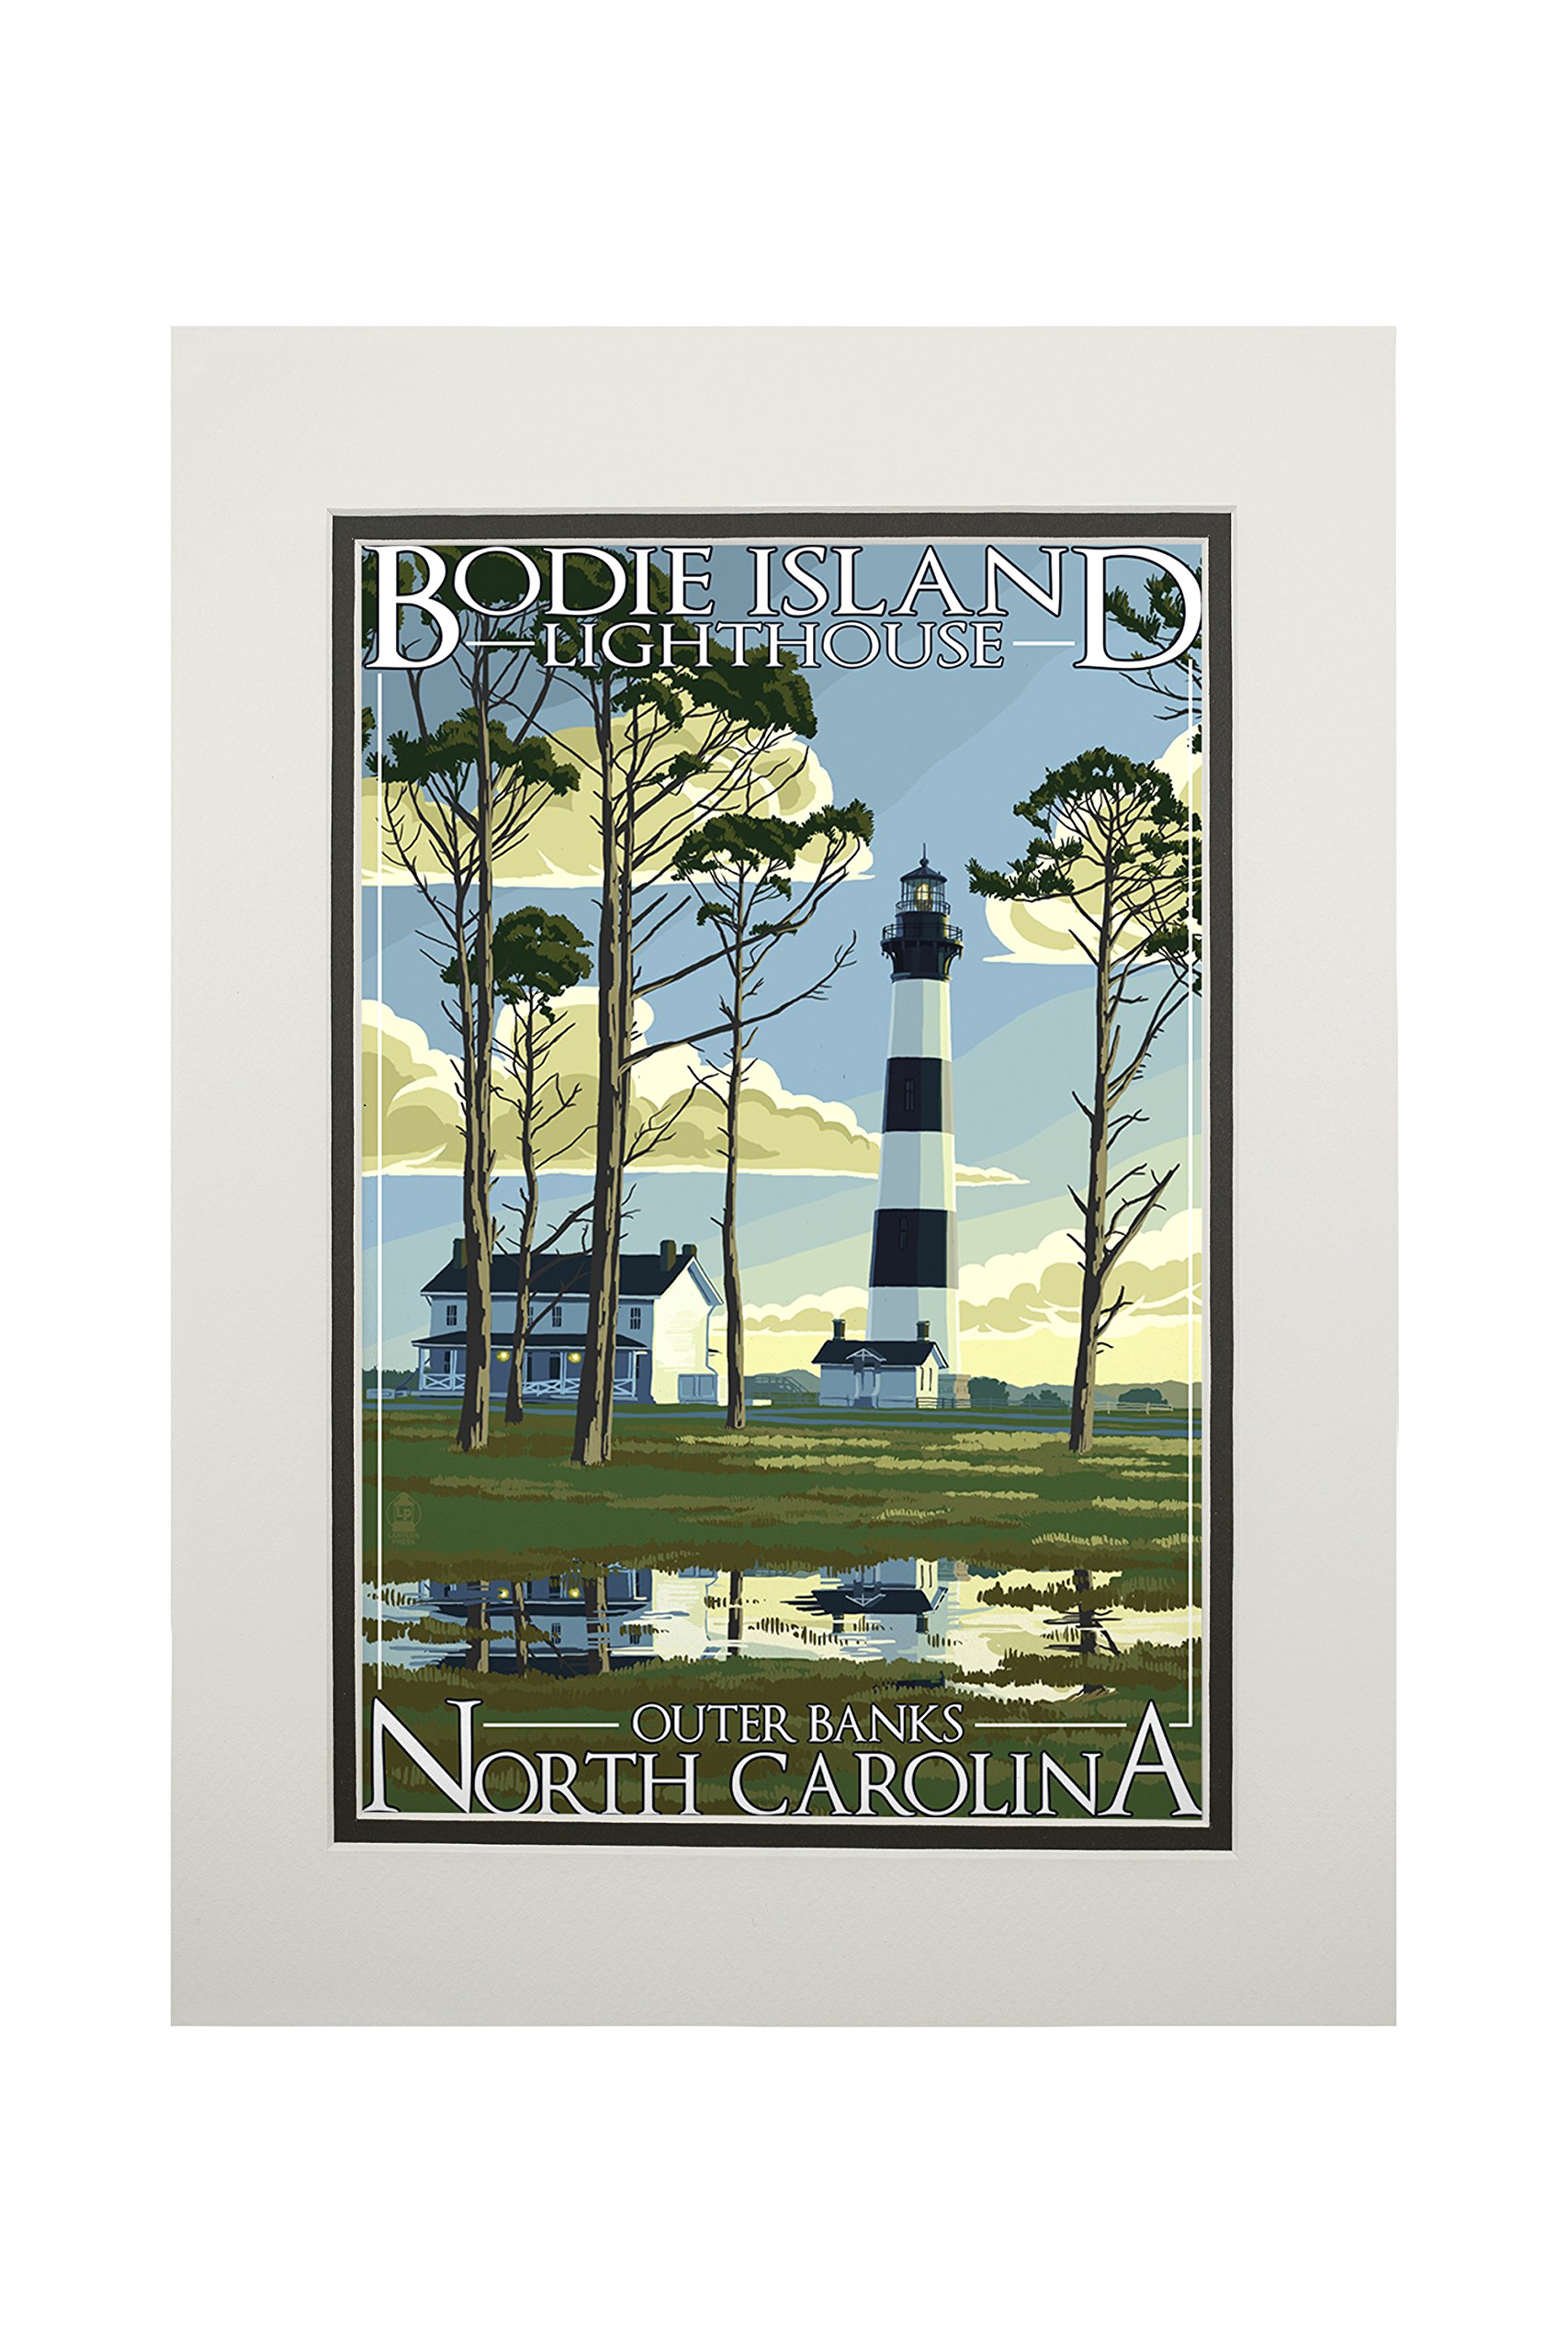 Outer Banks, North Carolina - Bodie Island Lighthouse (11x14 Double-Matted Art Print, Wall Decor Ready to Frame)